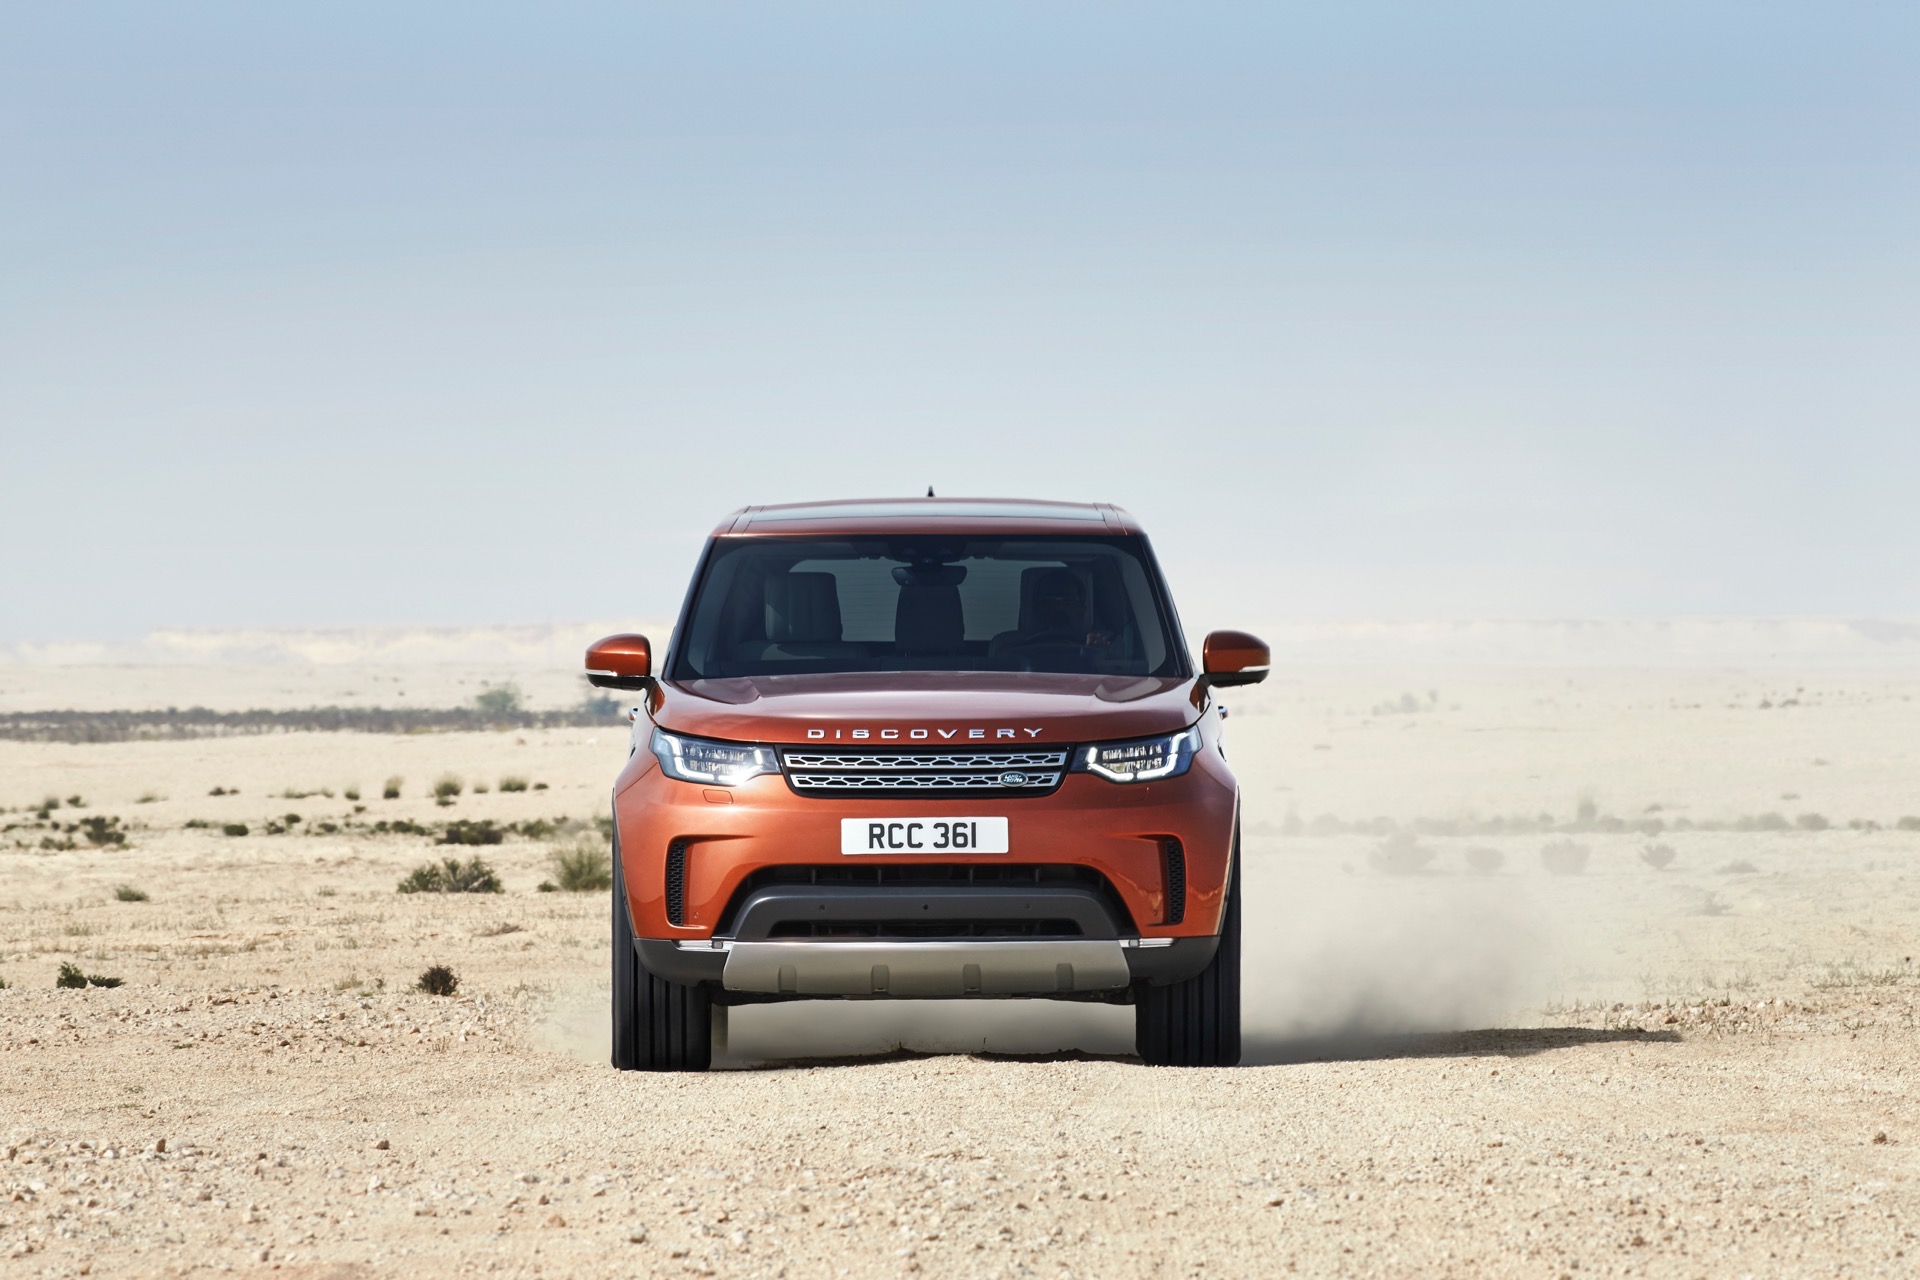 Will the new Land Rover Discovery challenge the BMW X5